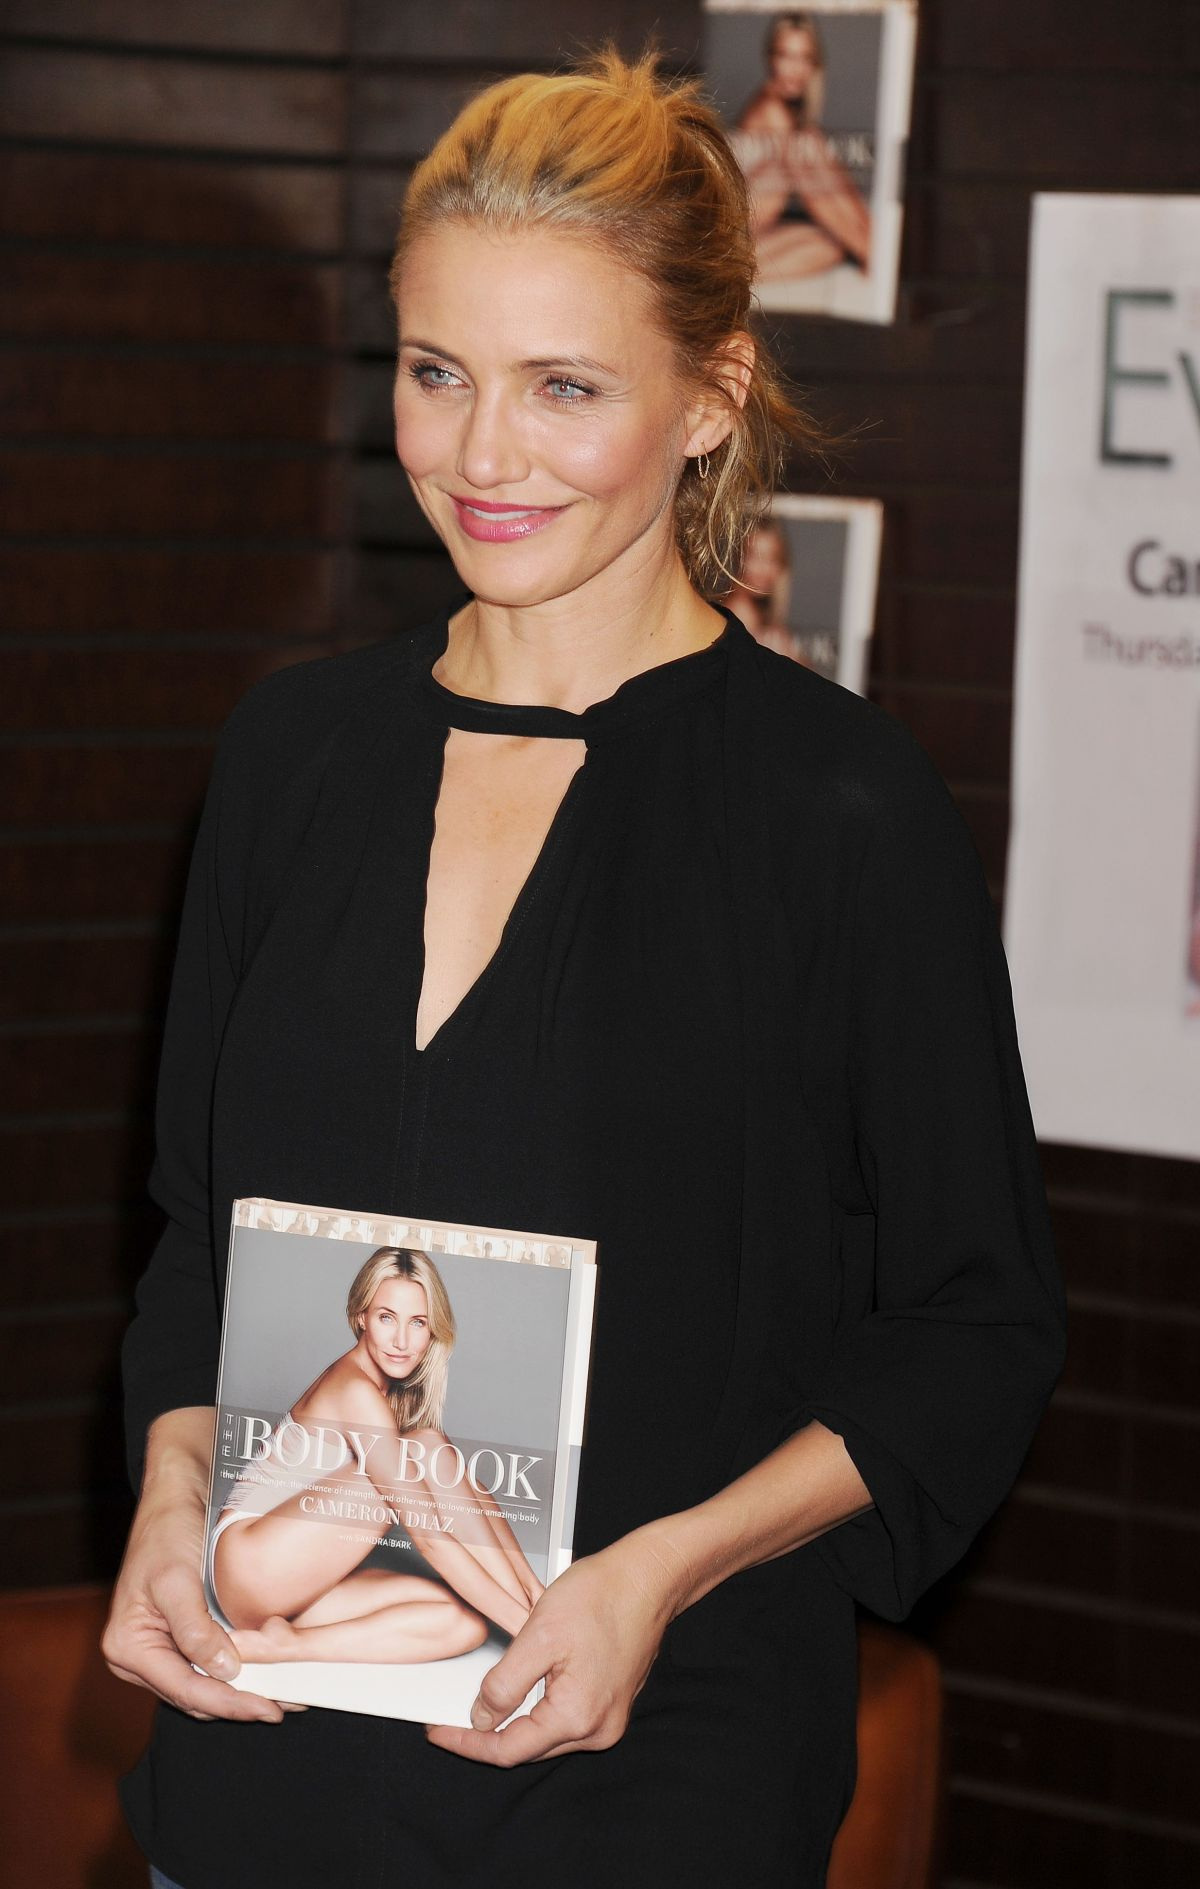 Cameron Diaz has become the most infected with Internet viruses star 08/20/2010 20